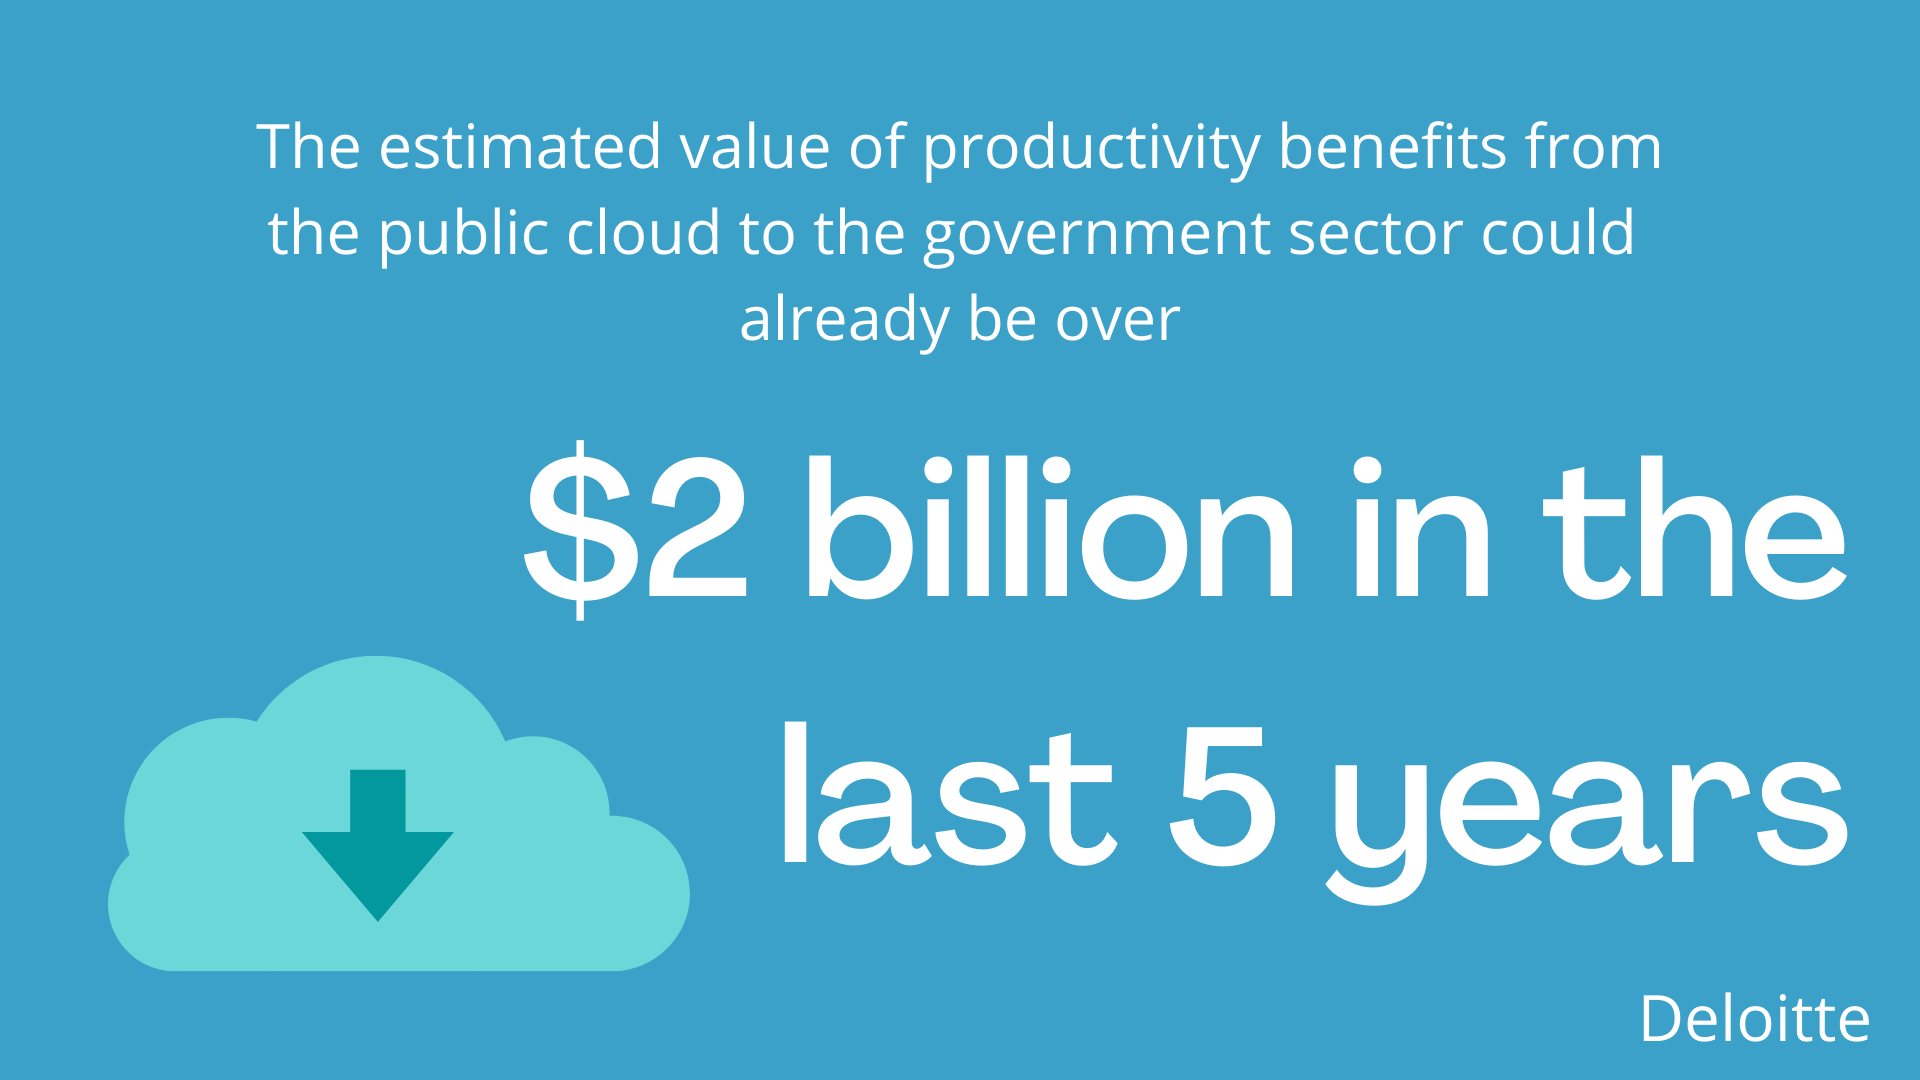 The estimated value of productivity benefits from the public cloud to the government sector could already be over $2 billion in the last 5 years